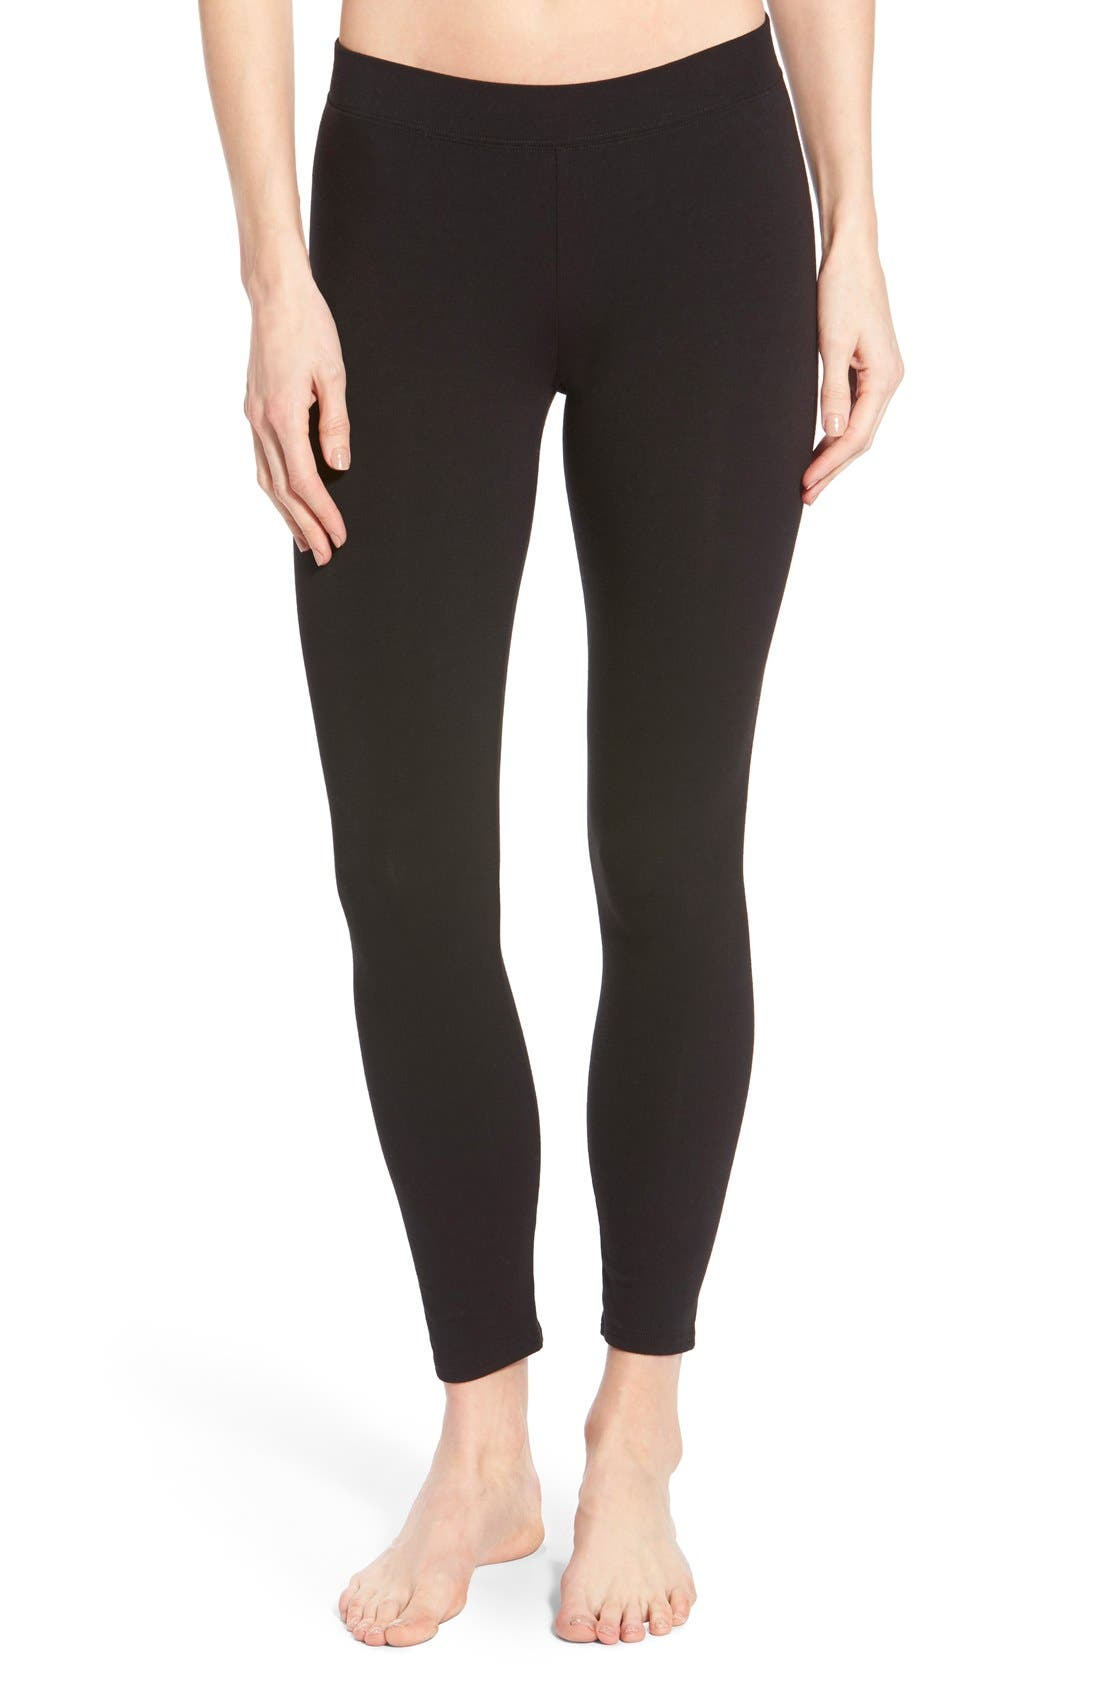 Main Image - Nordstrom Go-To Skimmer Ankle Leggings